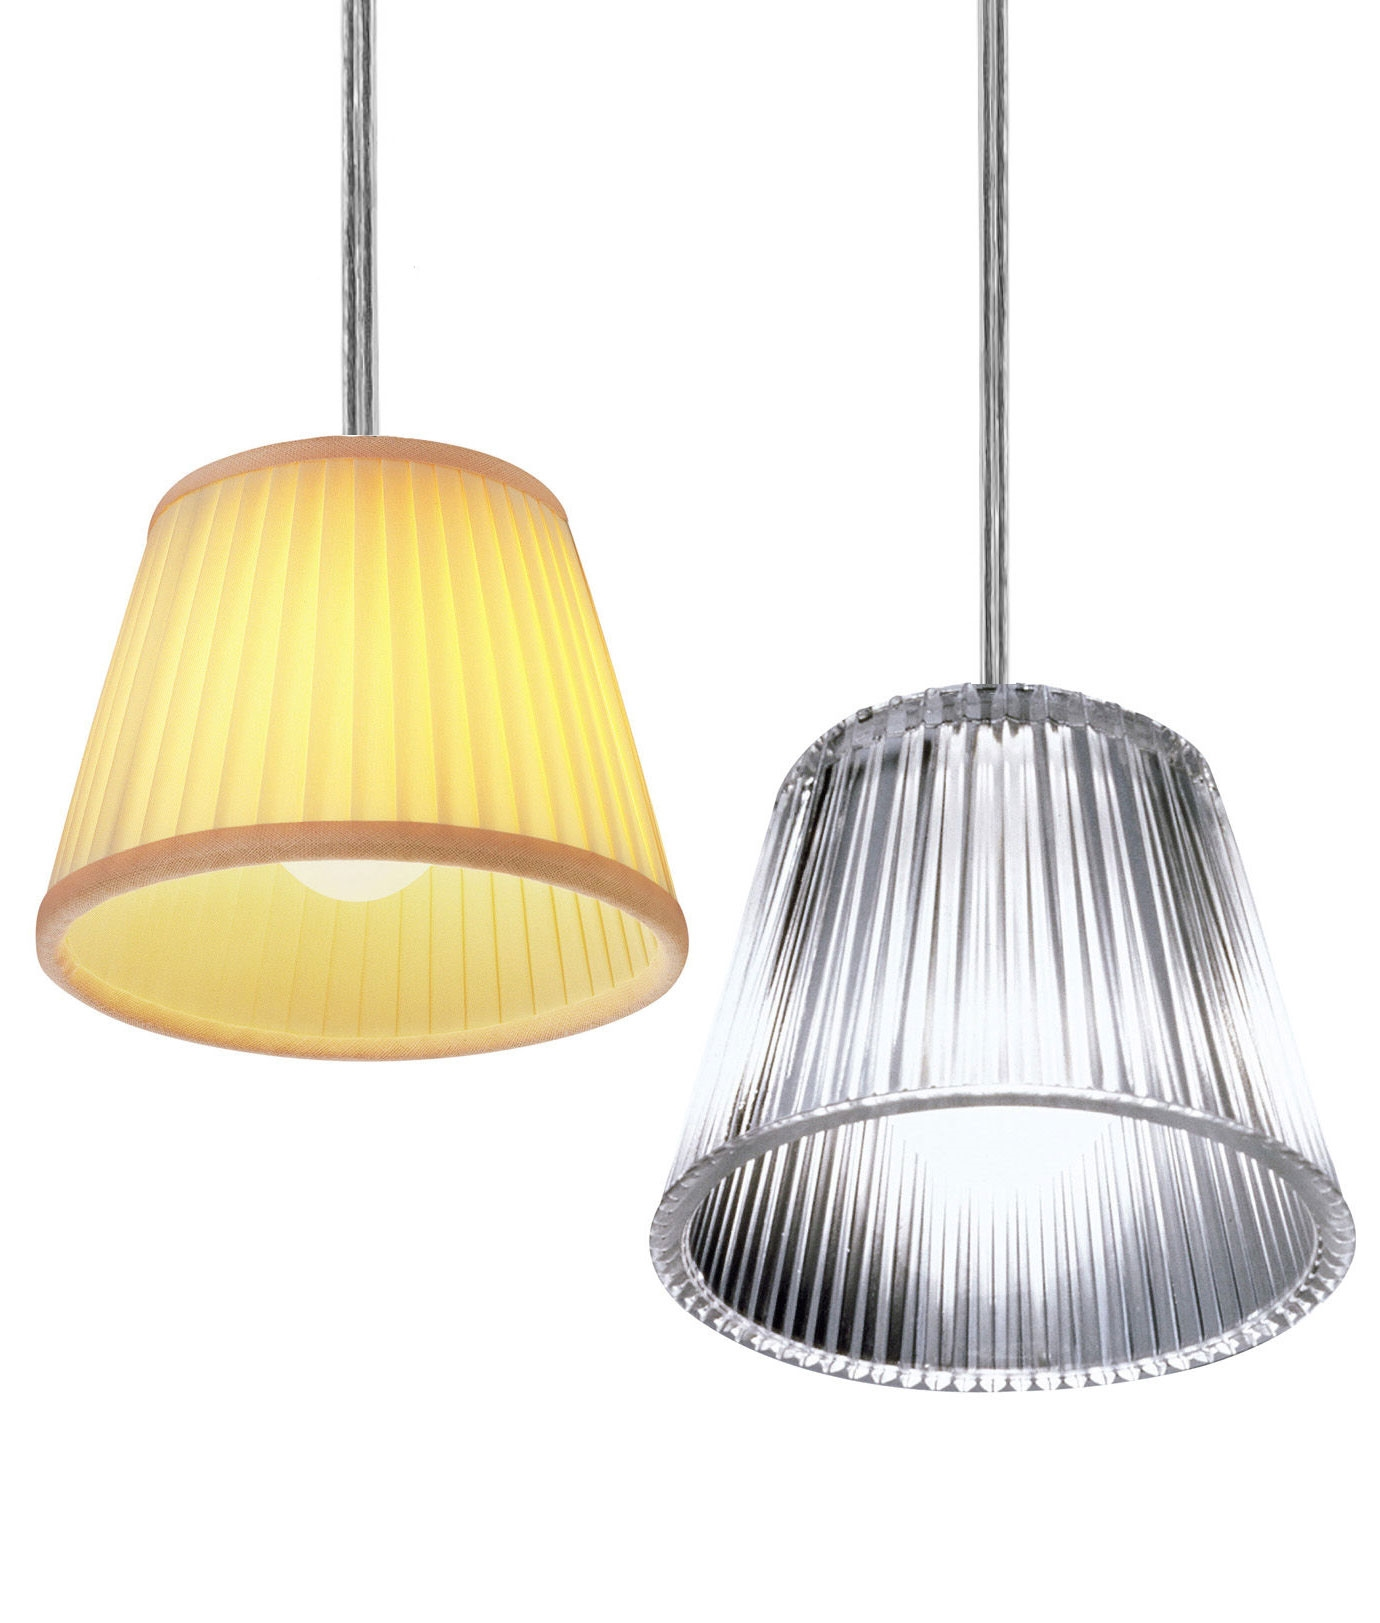 Romeo Babe S - Miniature Designer Light Pendants by Flos great for ...